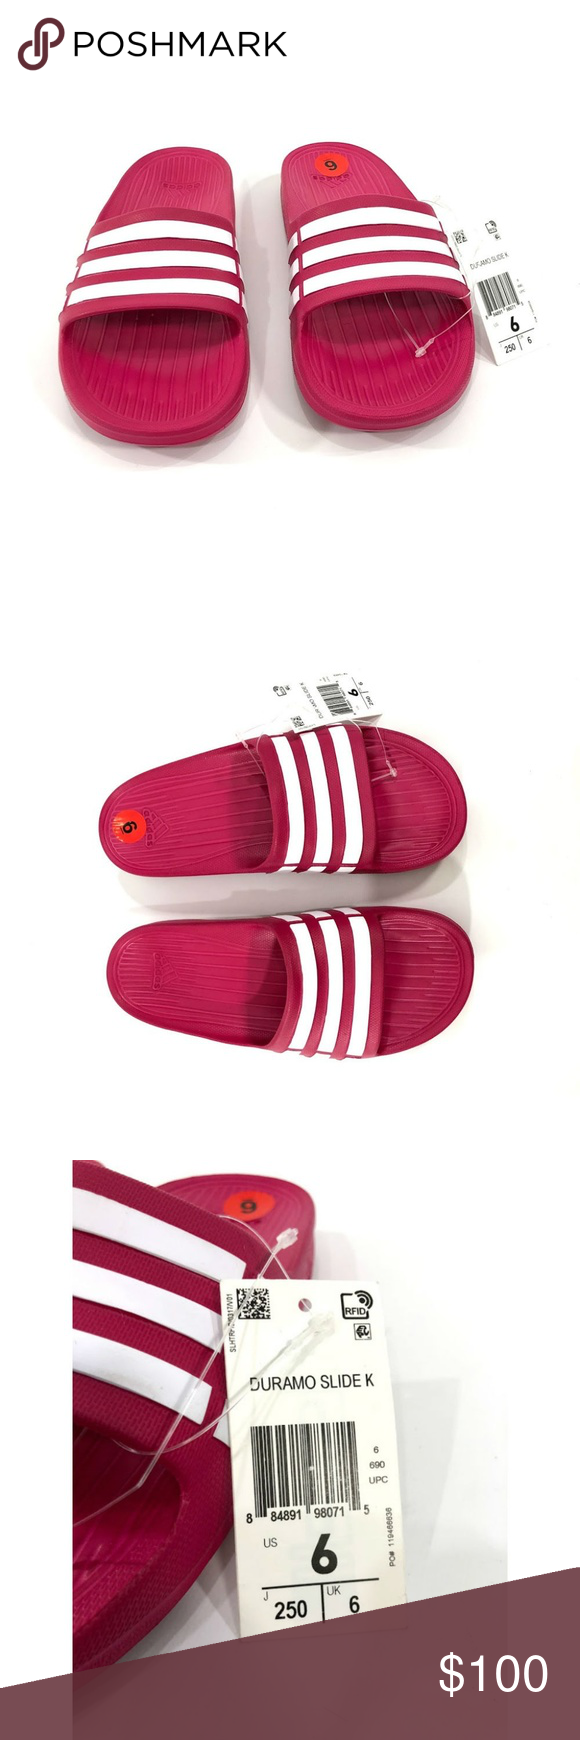 30125b5ef489b1 ... c85c2 155d9 Adidas Duramo Slide K Womens Flip Flops G06797 Adidas  adidas  Duramo Slide K Orange Pink White Kids Youth Sports Sandal Slippers CP9384  ...